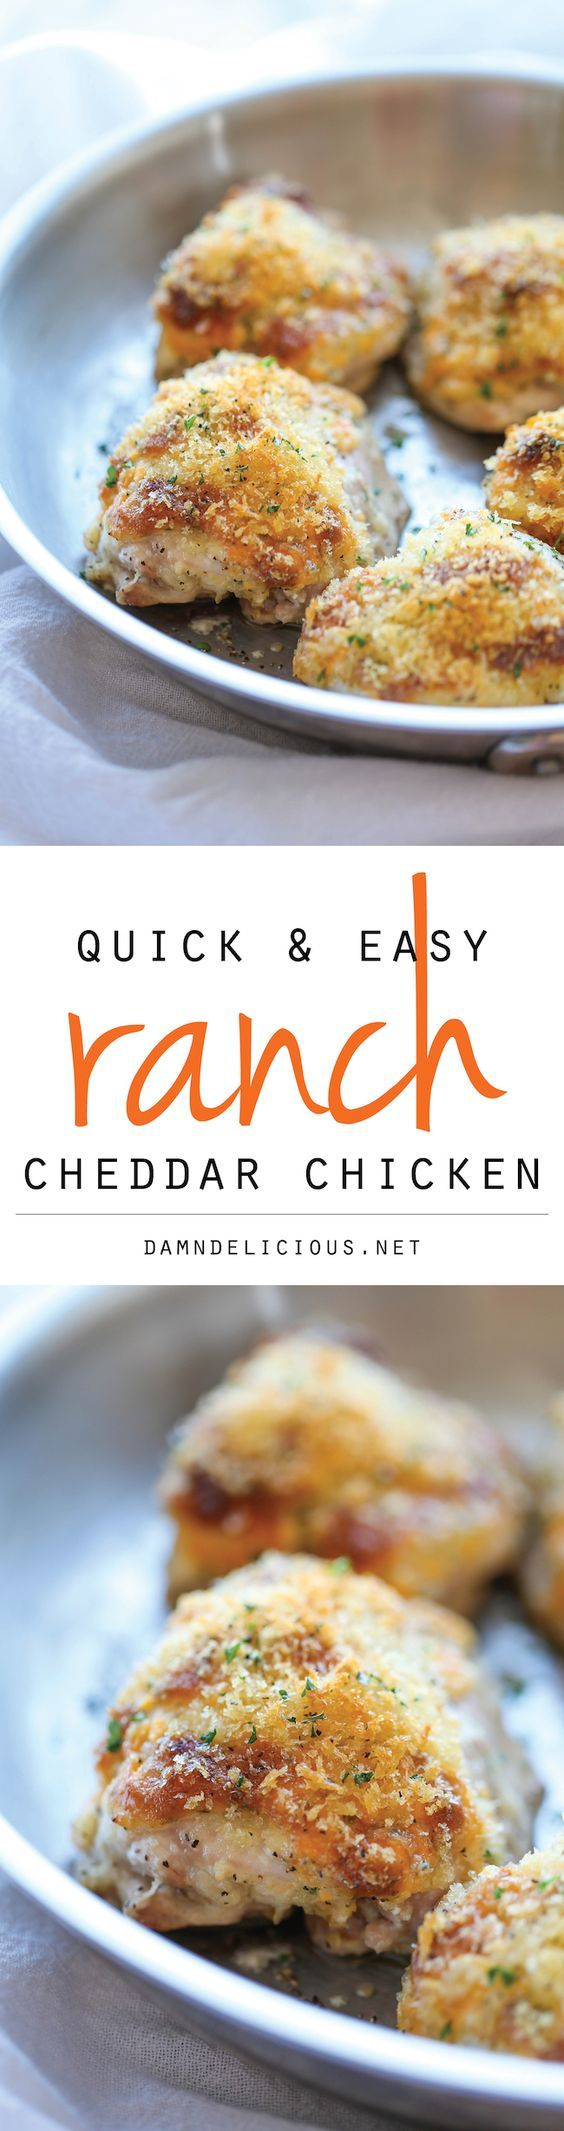 {USA} Ranch Cheddar Chicken - The quickest and easiest baked chicken with an amazingly creamy, cheesy Ranch topping!